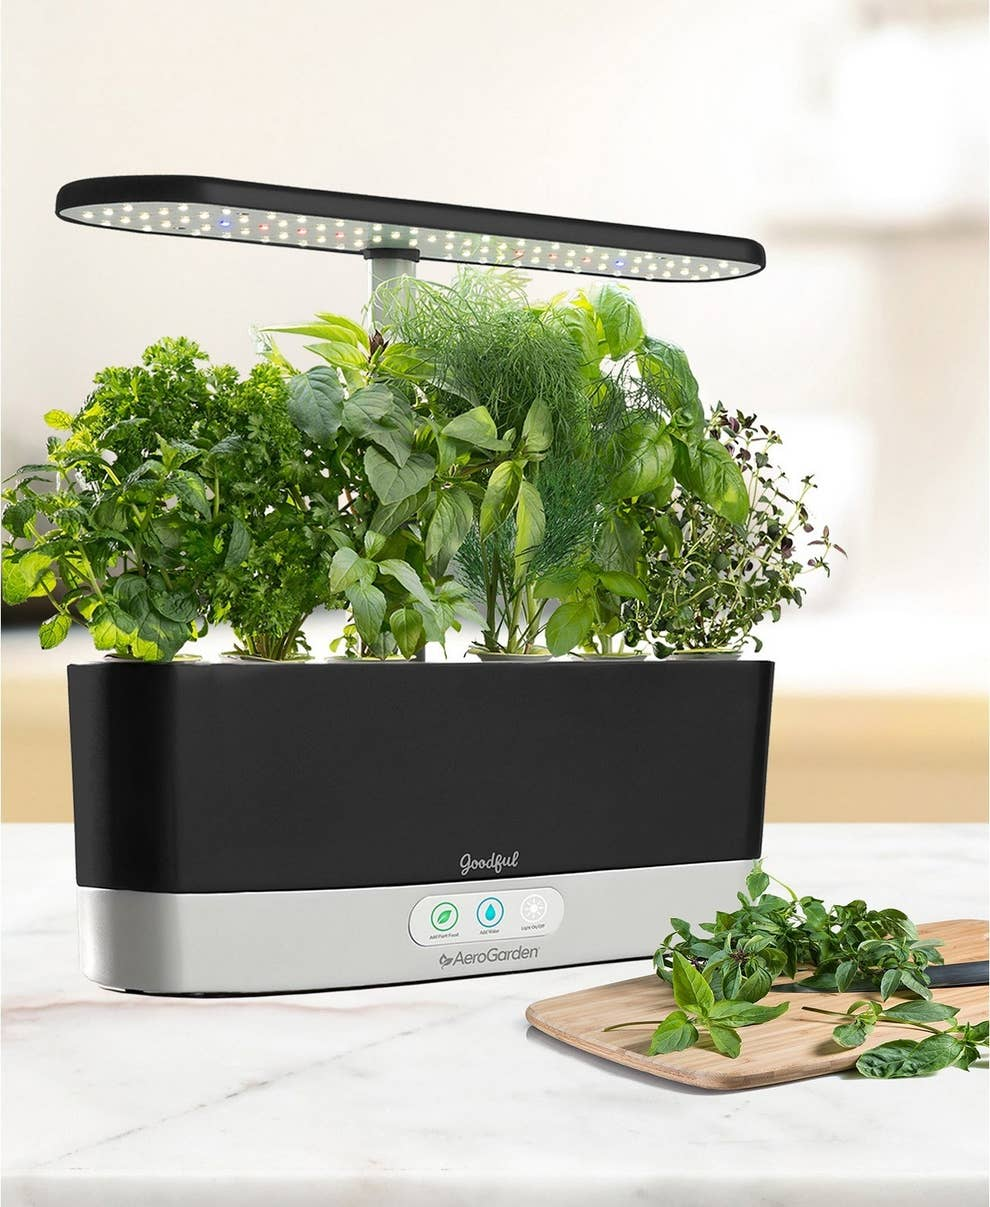 The Aerogarden harvest is about a foot long and about 2 inches wide. It has 3 buttons and green leaves sprouting from the top with an LED lamp sticking up from the bottom and towering over the leaves.